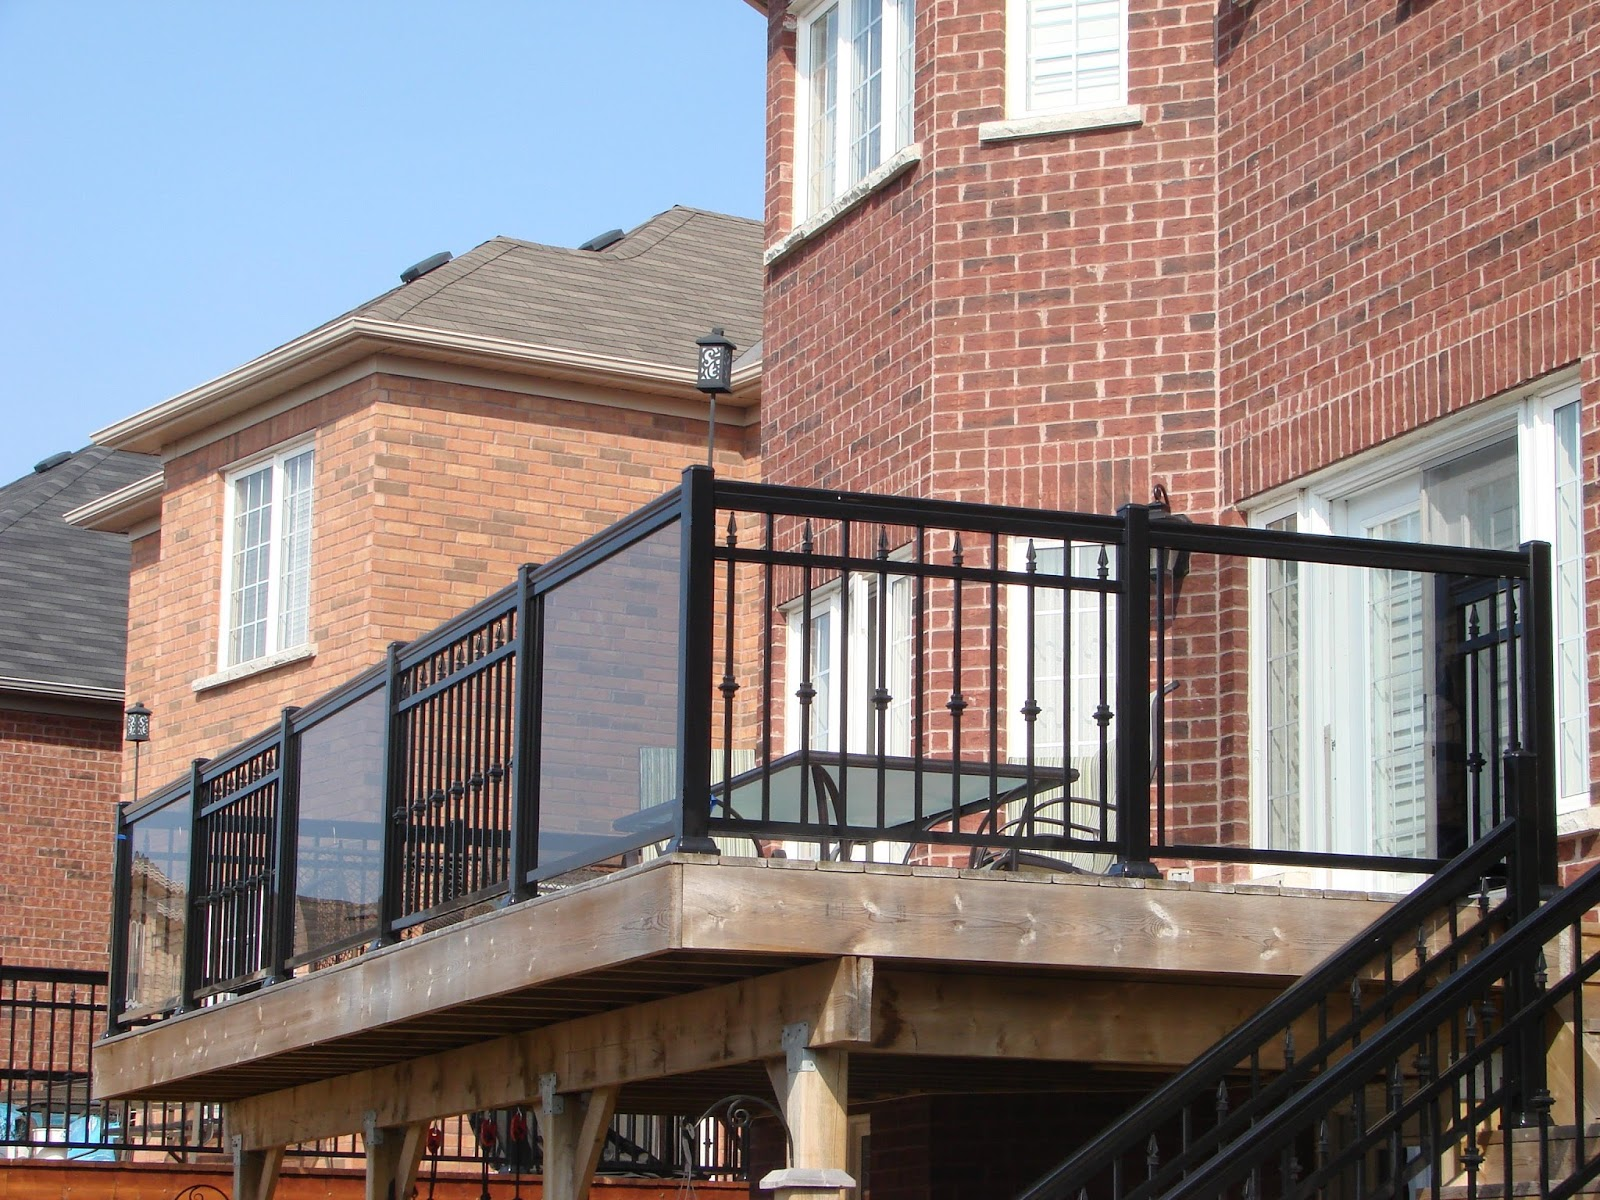 railings series railing posts products style porch stone level aluminum rail columns millwork a worthington straight kit